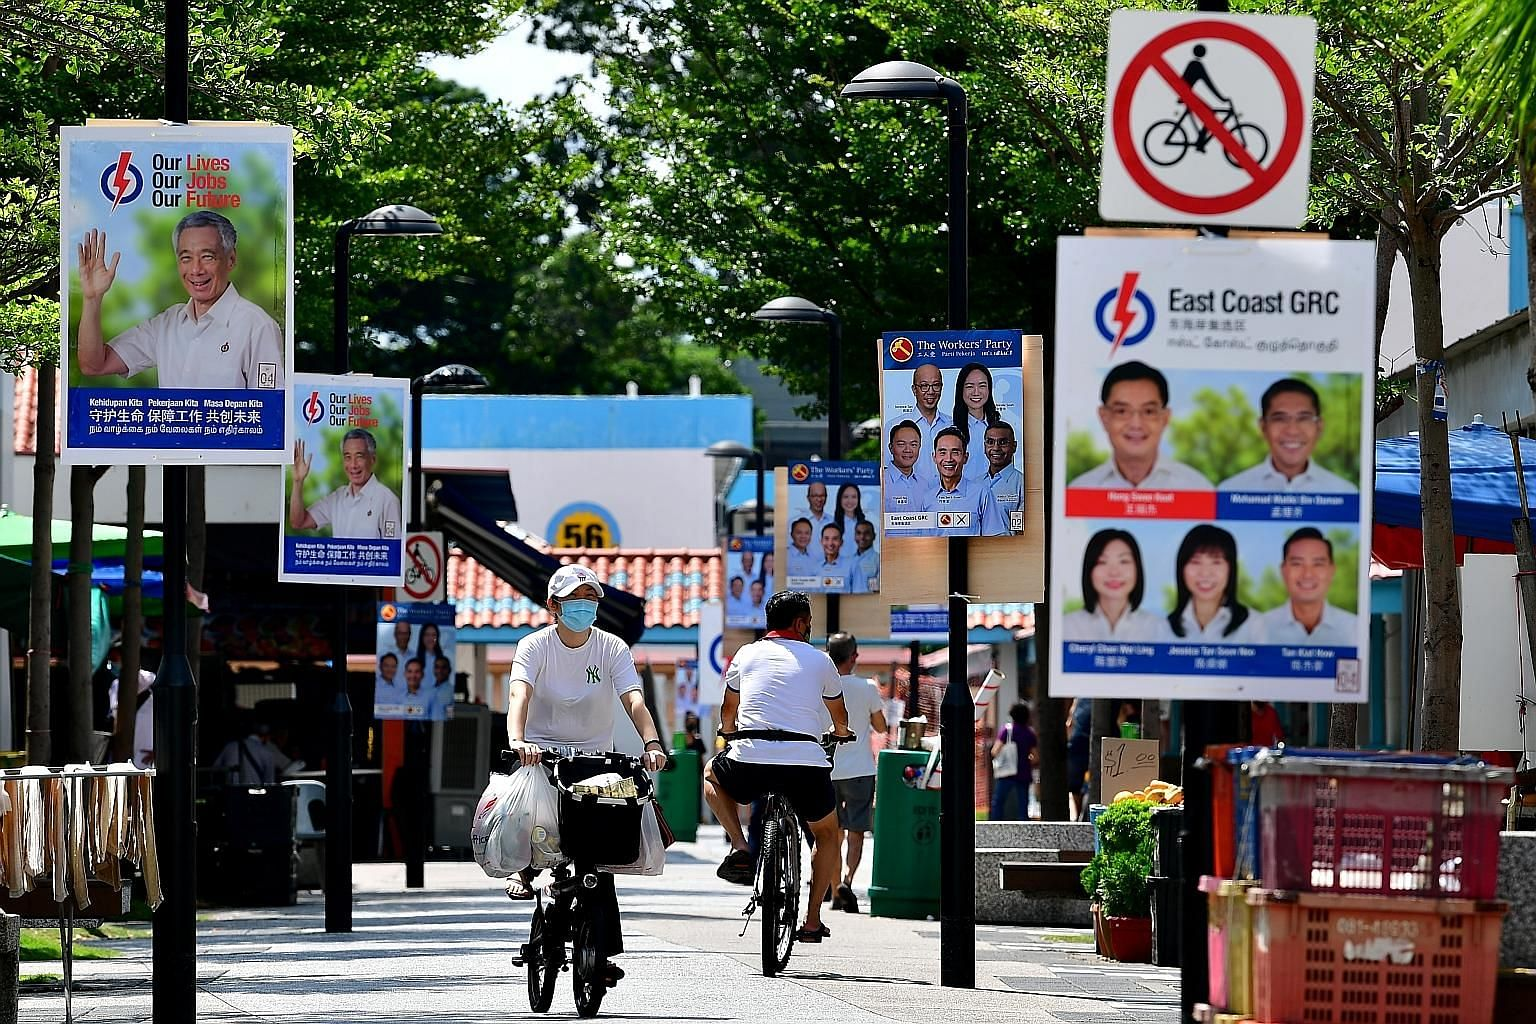 People's Action Party and Workers' Party campaign posters in New Upper Changi Road in East Coast GRC before the July 10 general election. Analysts reckon that it is too soon to say if anything has fundamentally changed about the way voters approach t